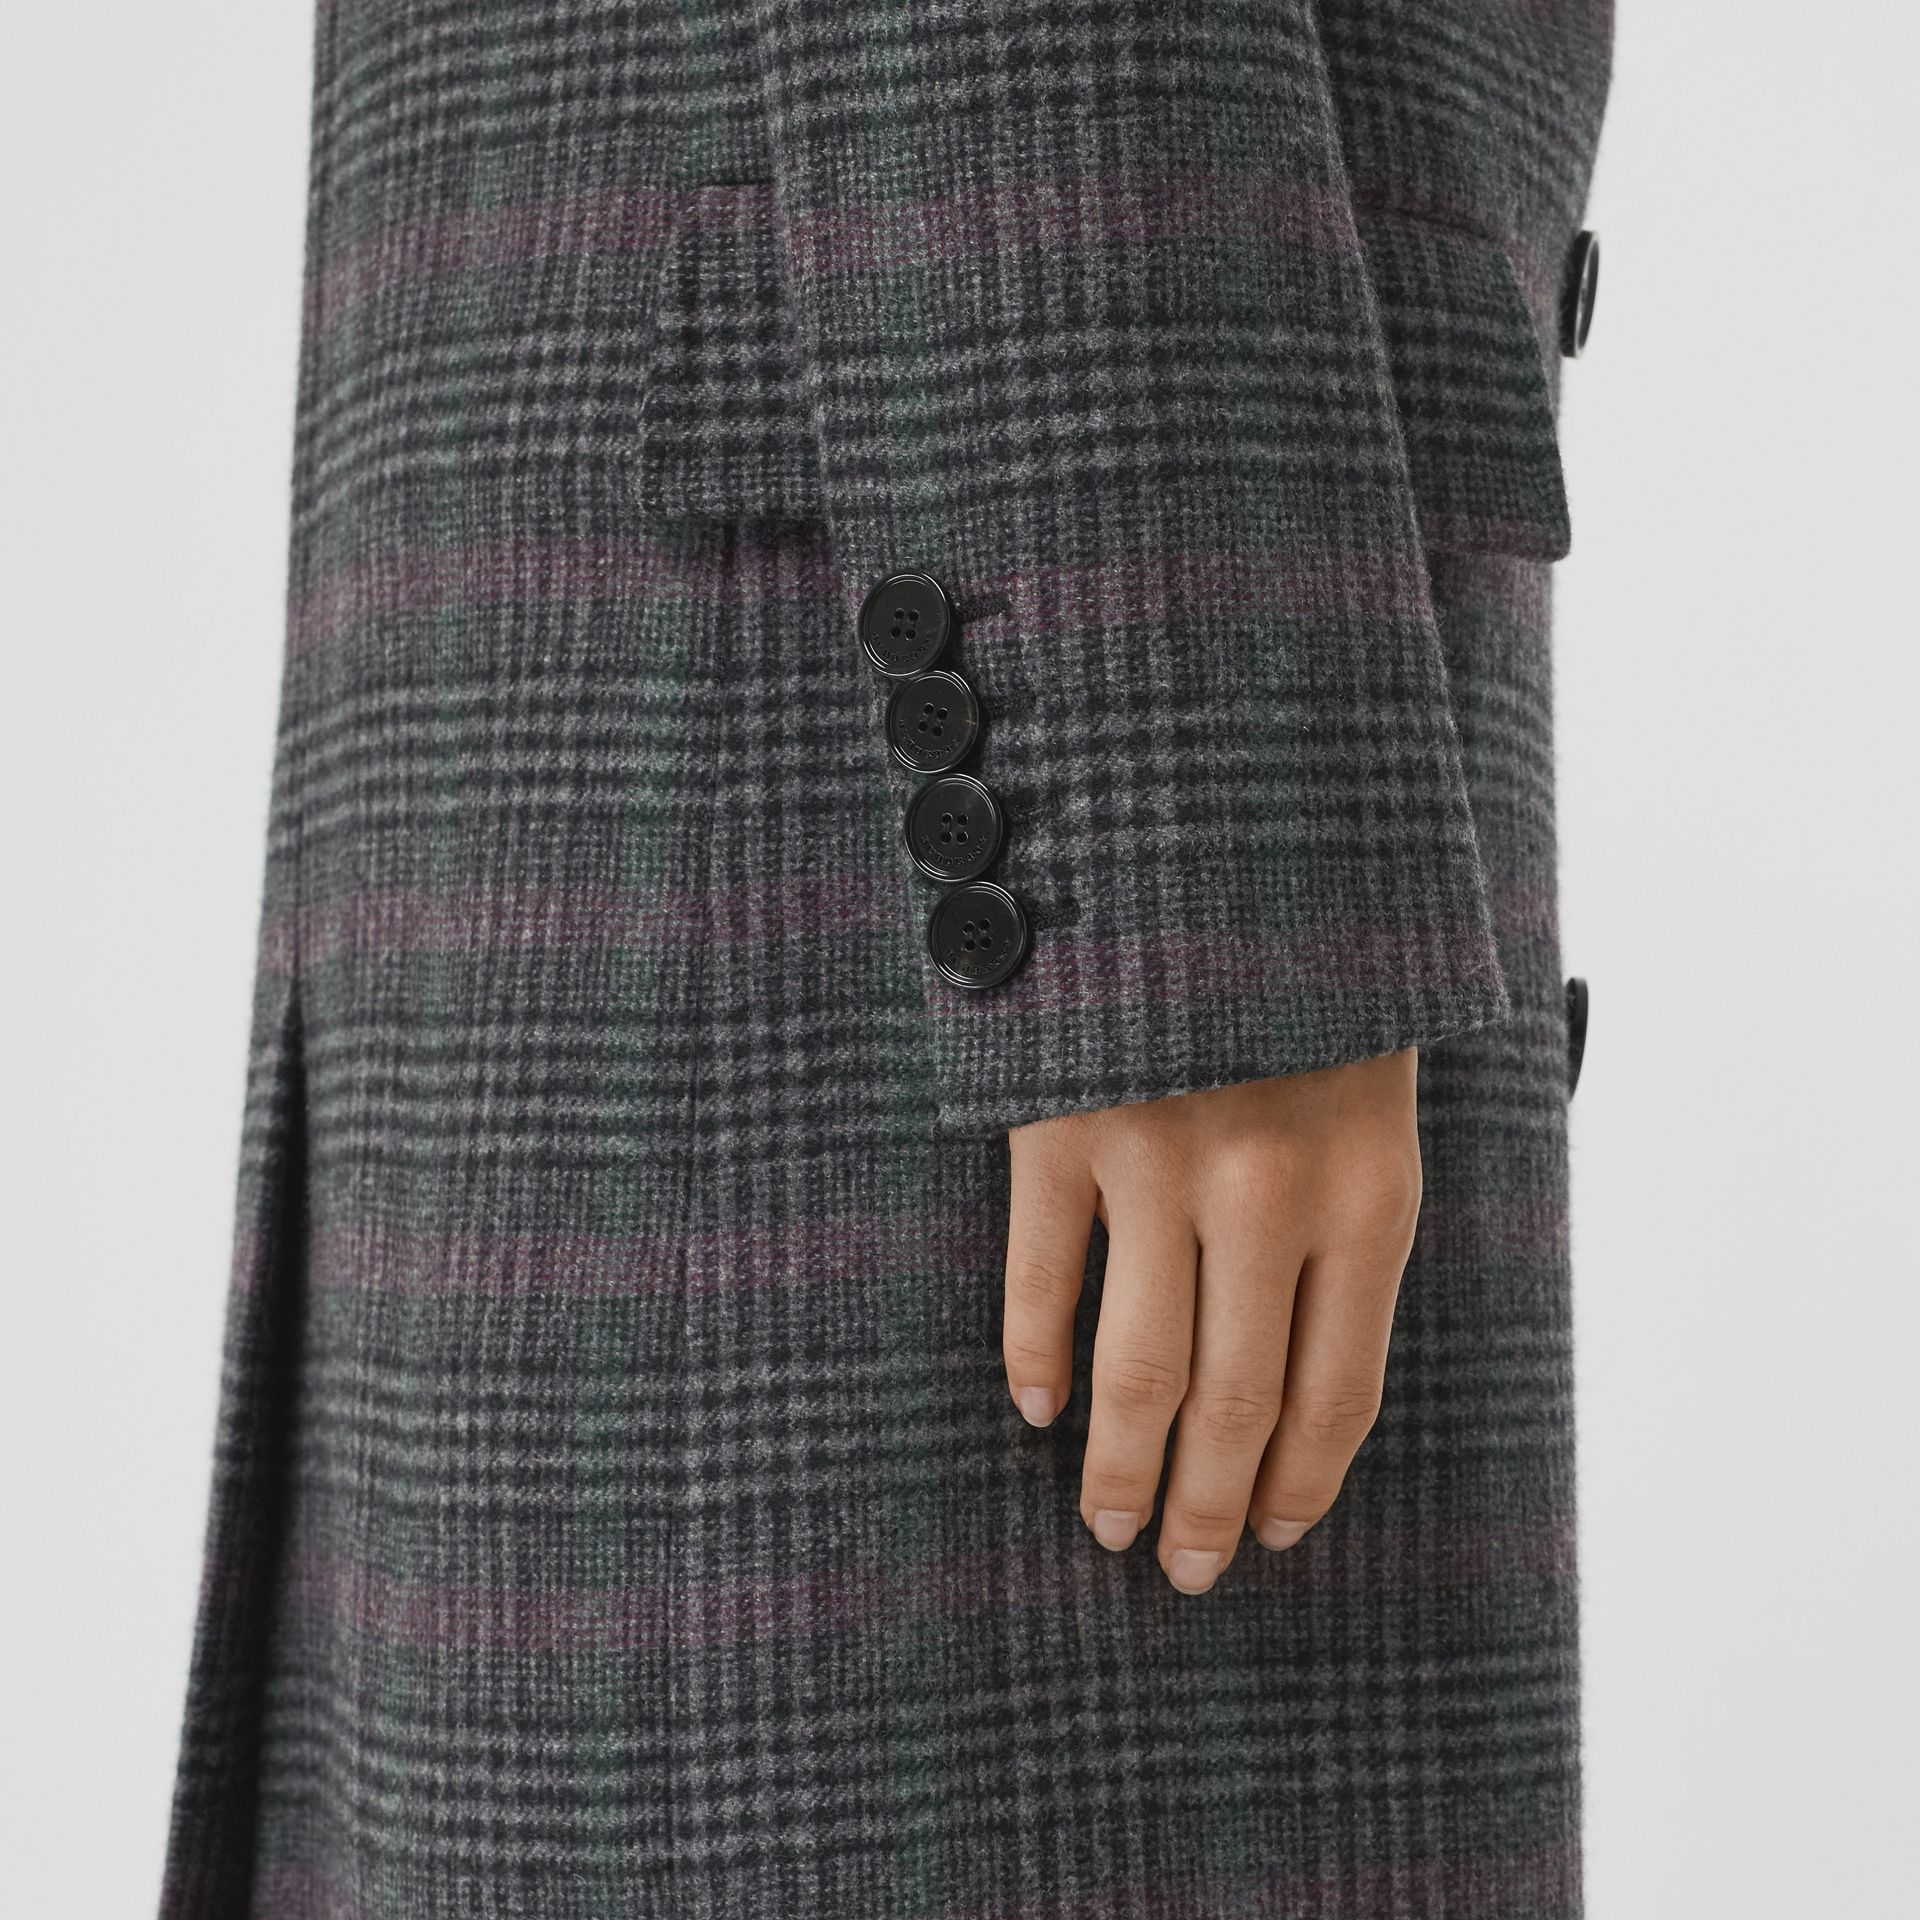 Prince of Wales Check Wool Tailored Coat in Charcoal - Women | Burberry - gallery image 4